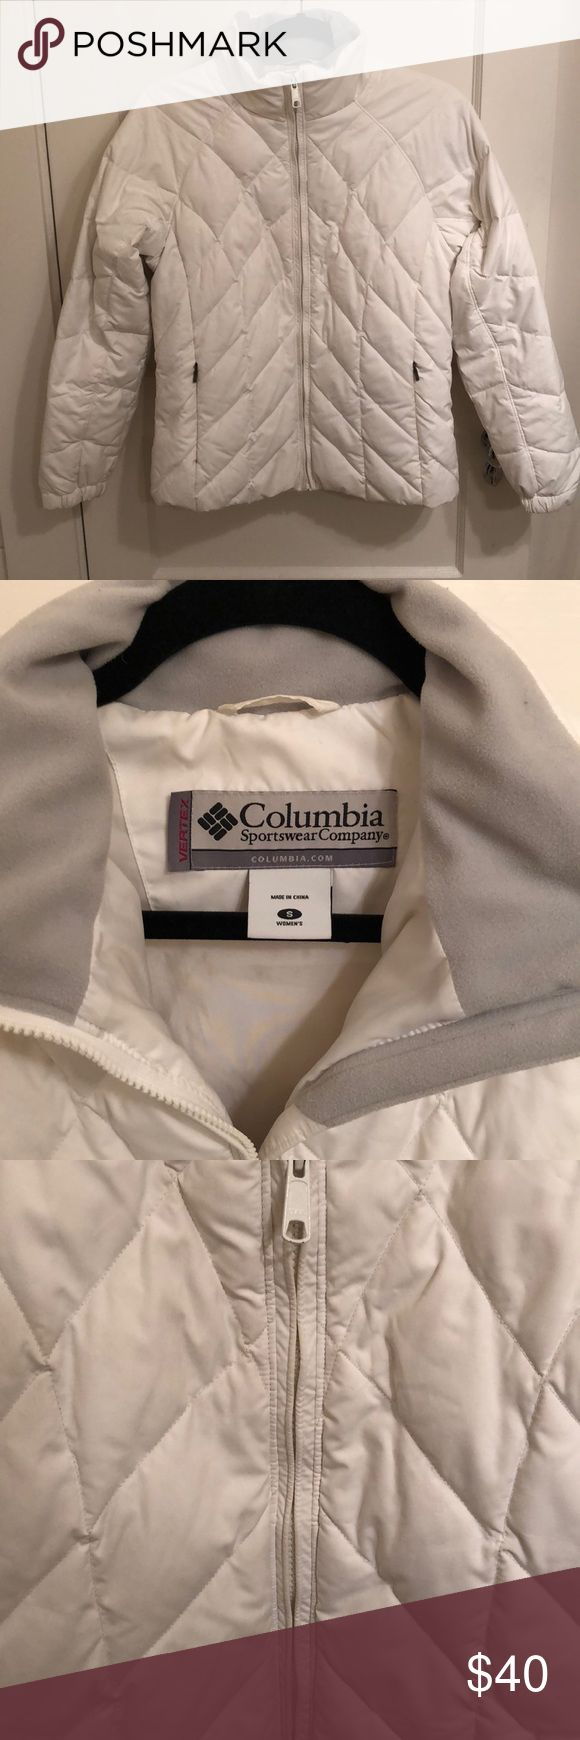 Columbia Sportswear White Down Jacket Puffy Sz S Super cute women's white down jacket by Columbia Sportswear. Flattering design. Size small. Bright white color. Some not very noticeable marks on the cuffs (see photos) but overall great used condition Columbia Jackets & Coats Puffers